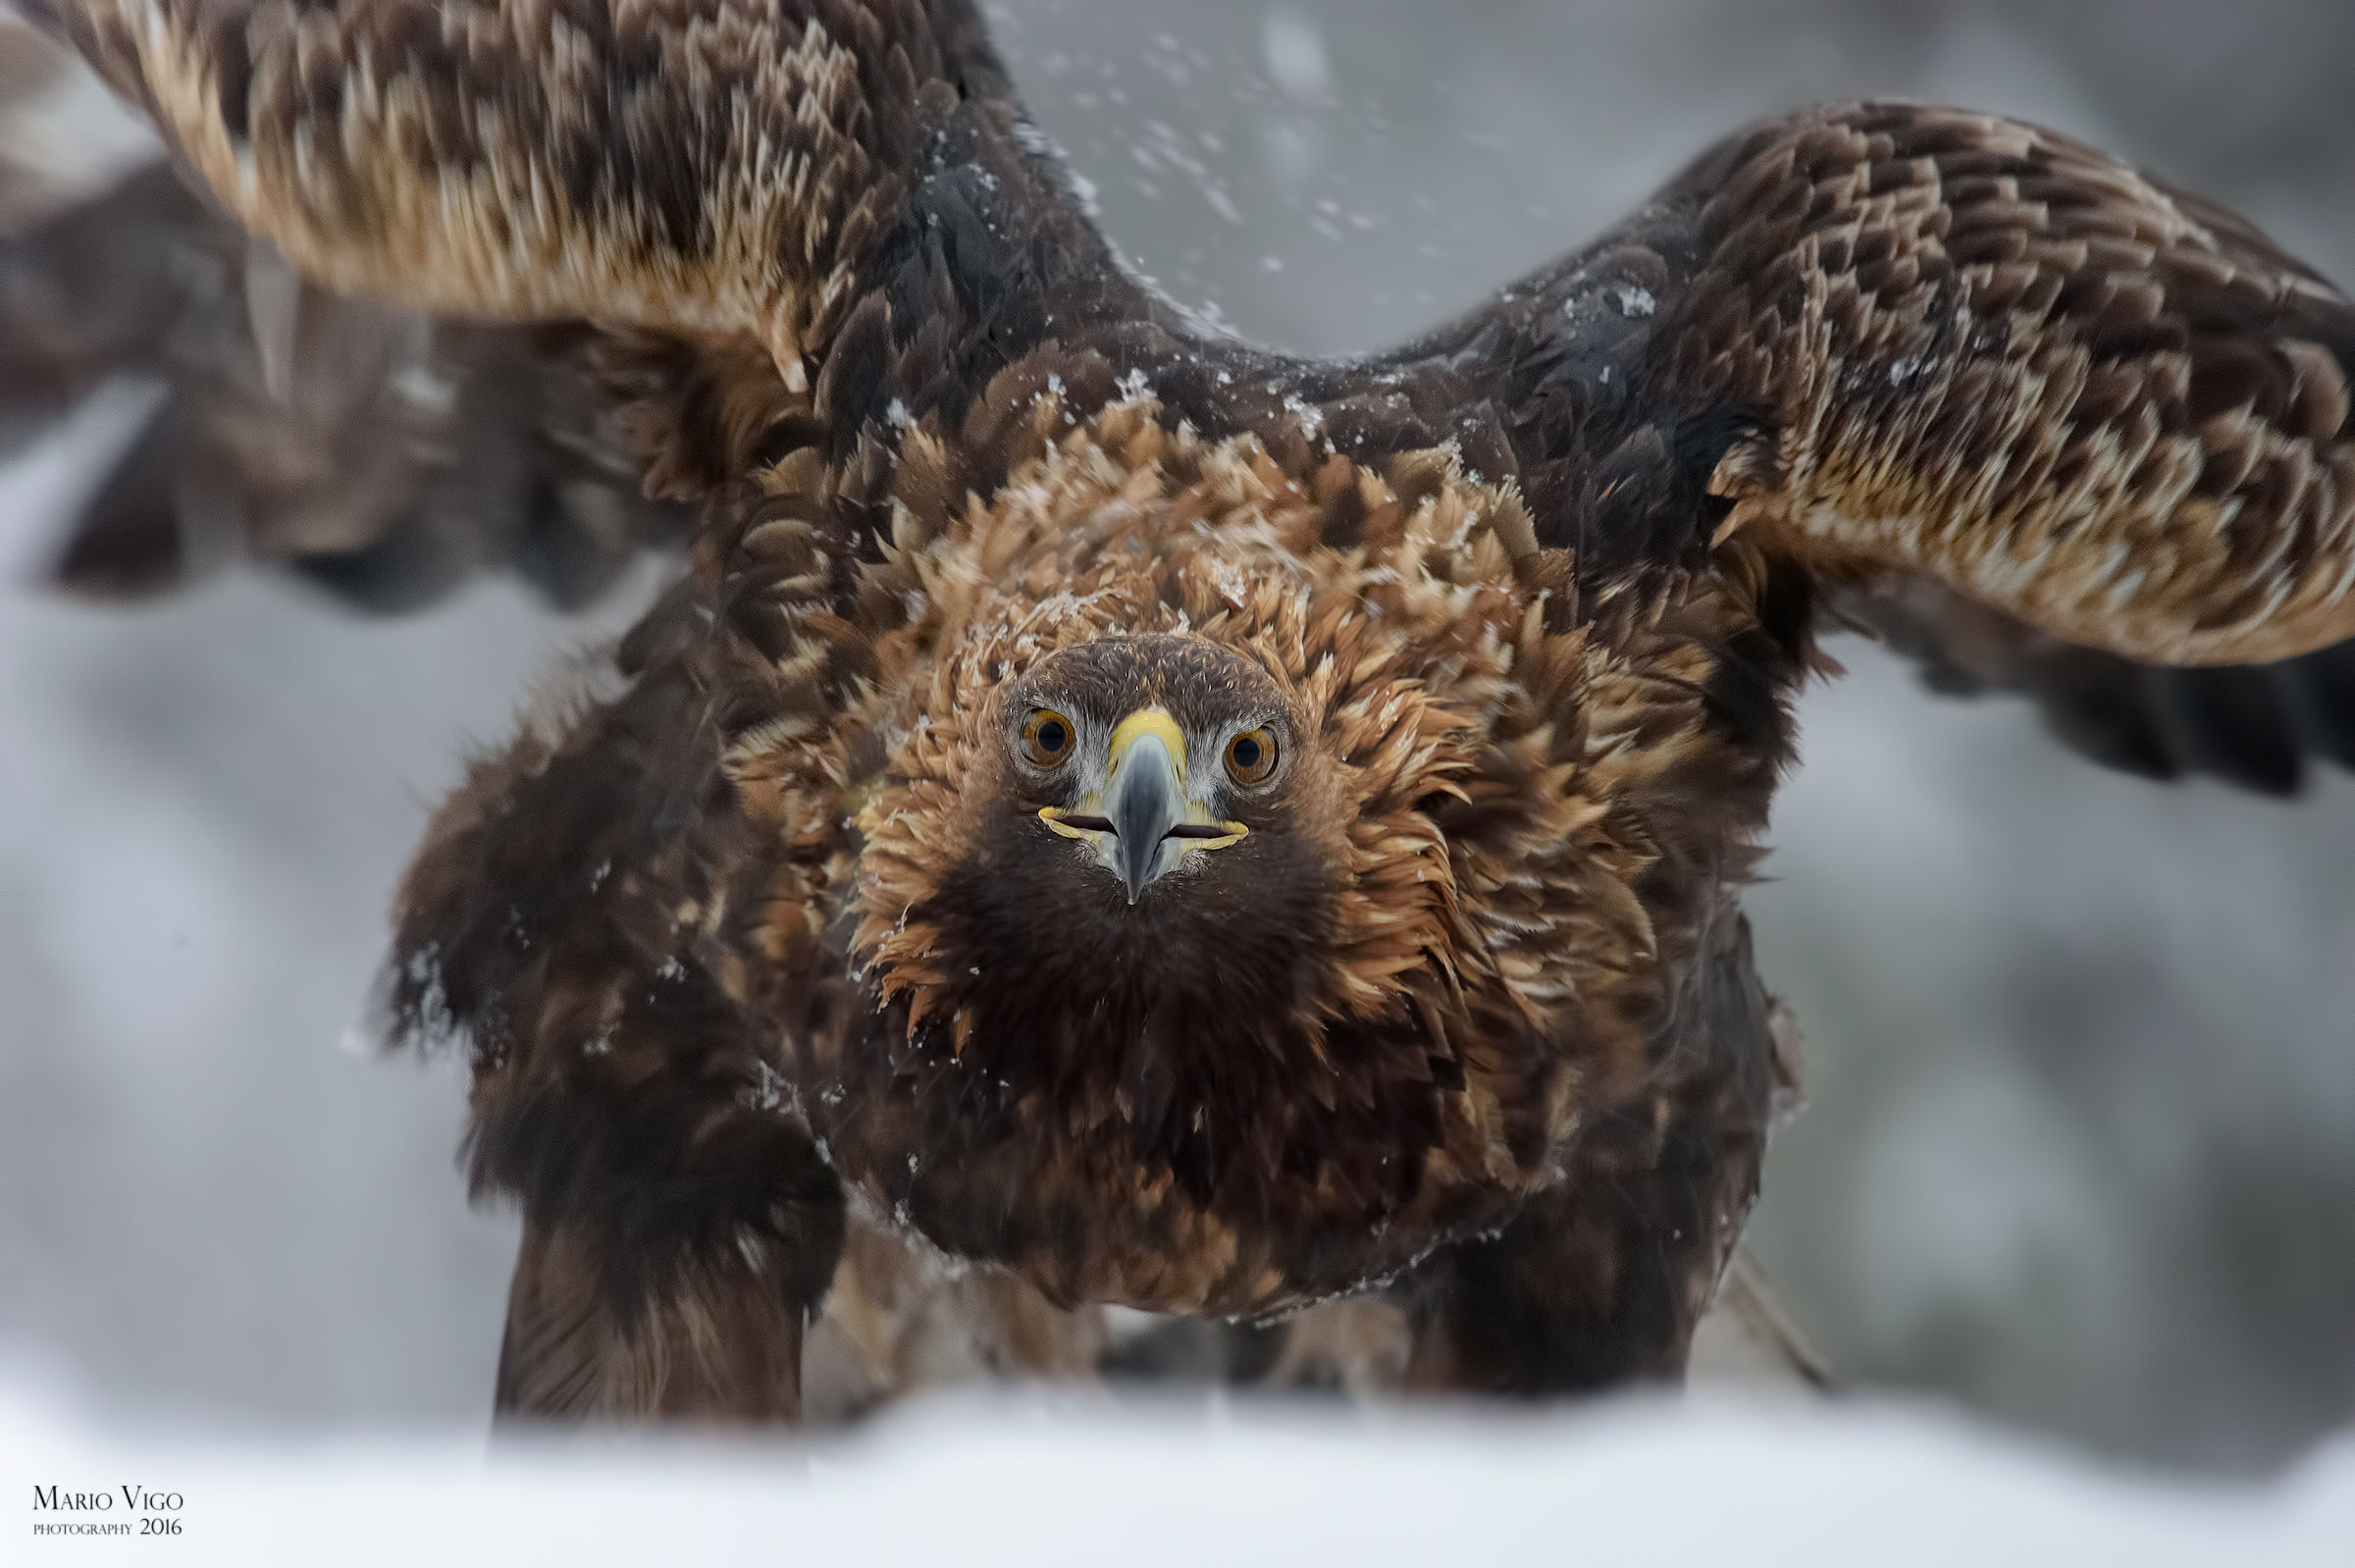 The look of the eagle...